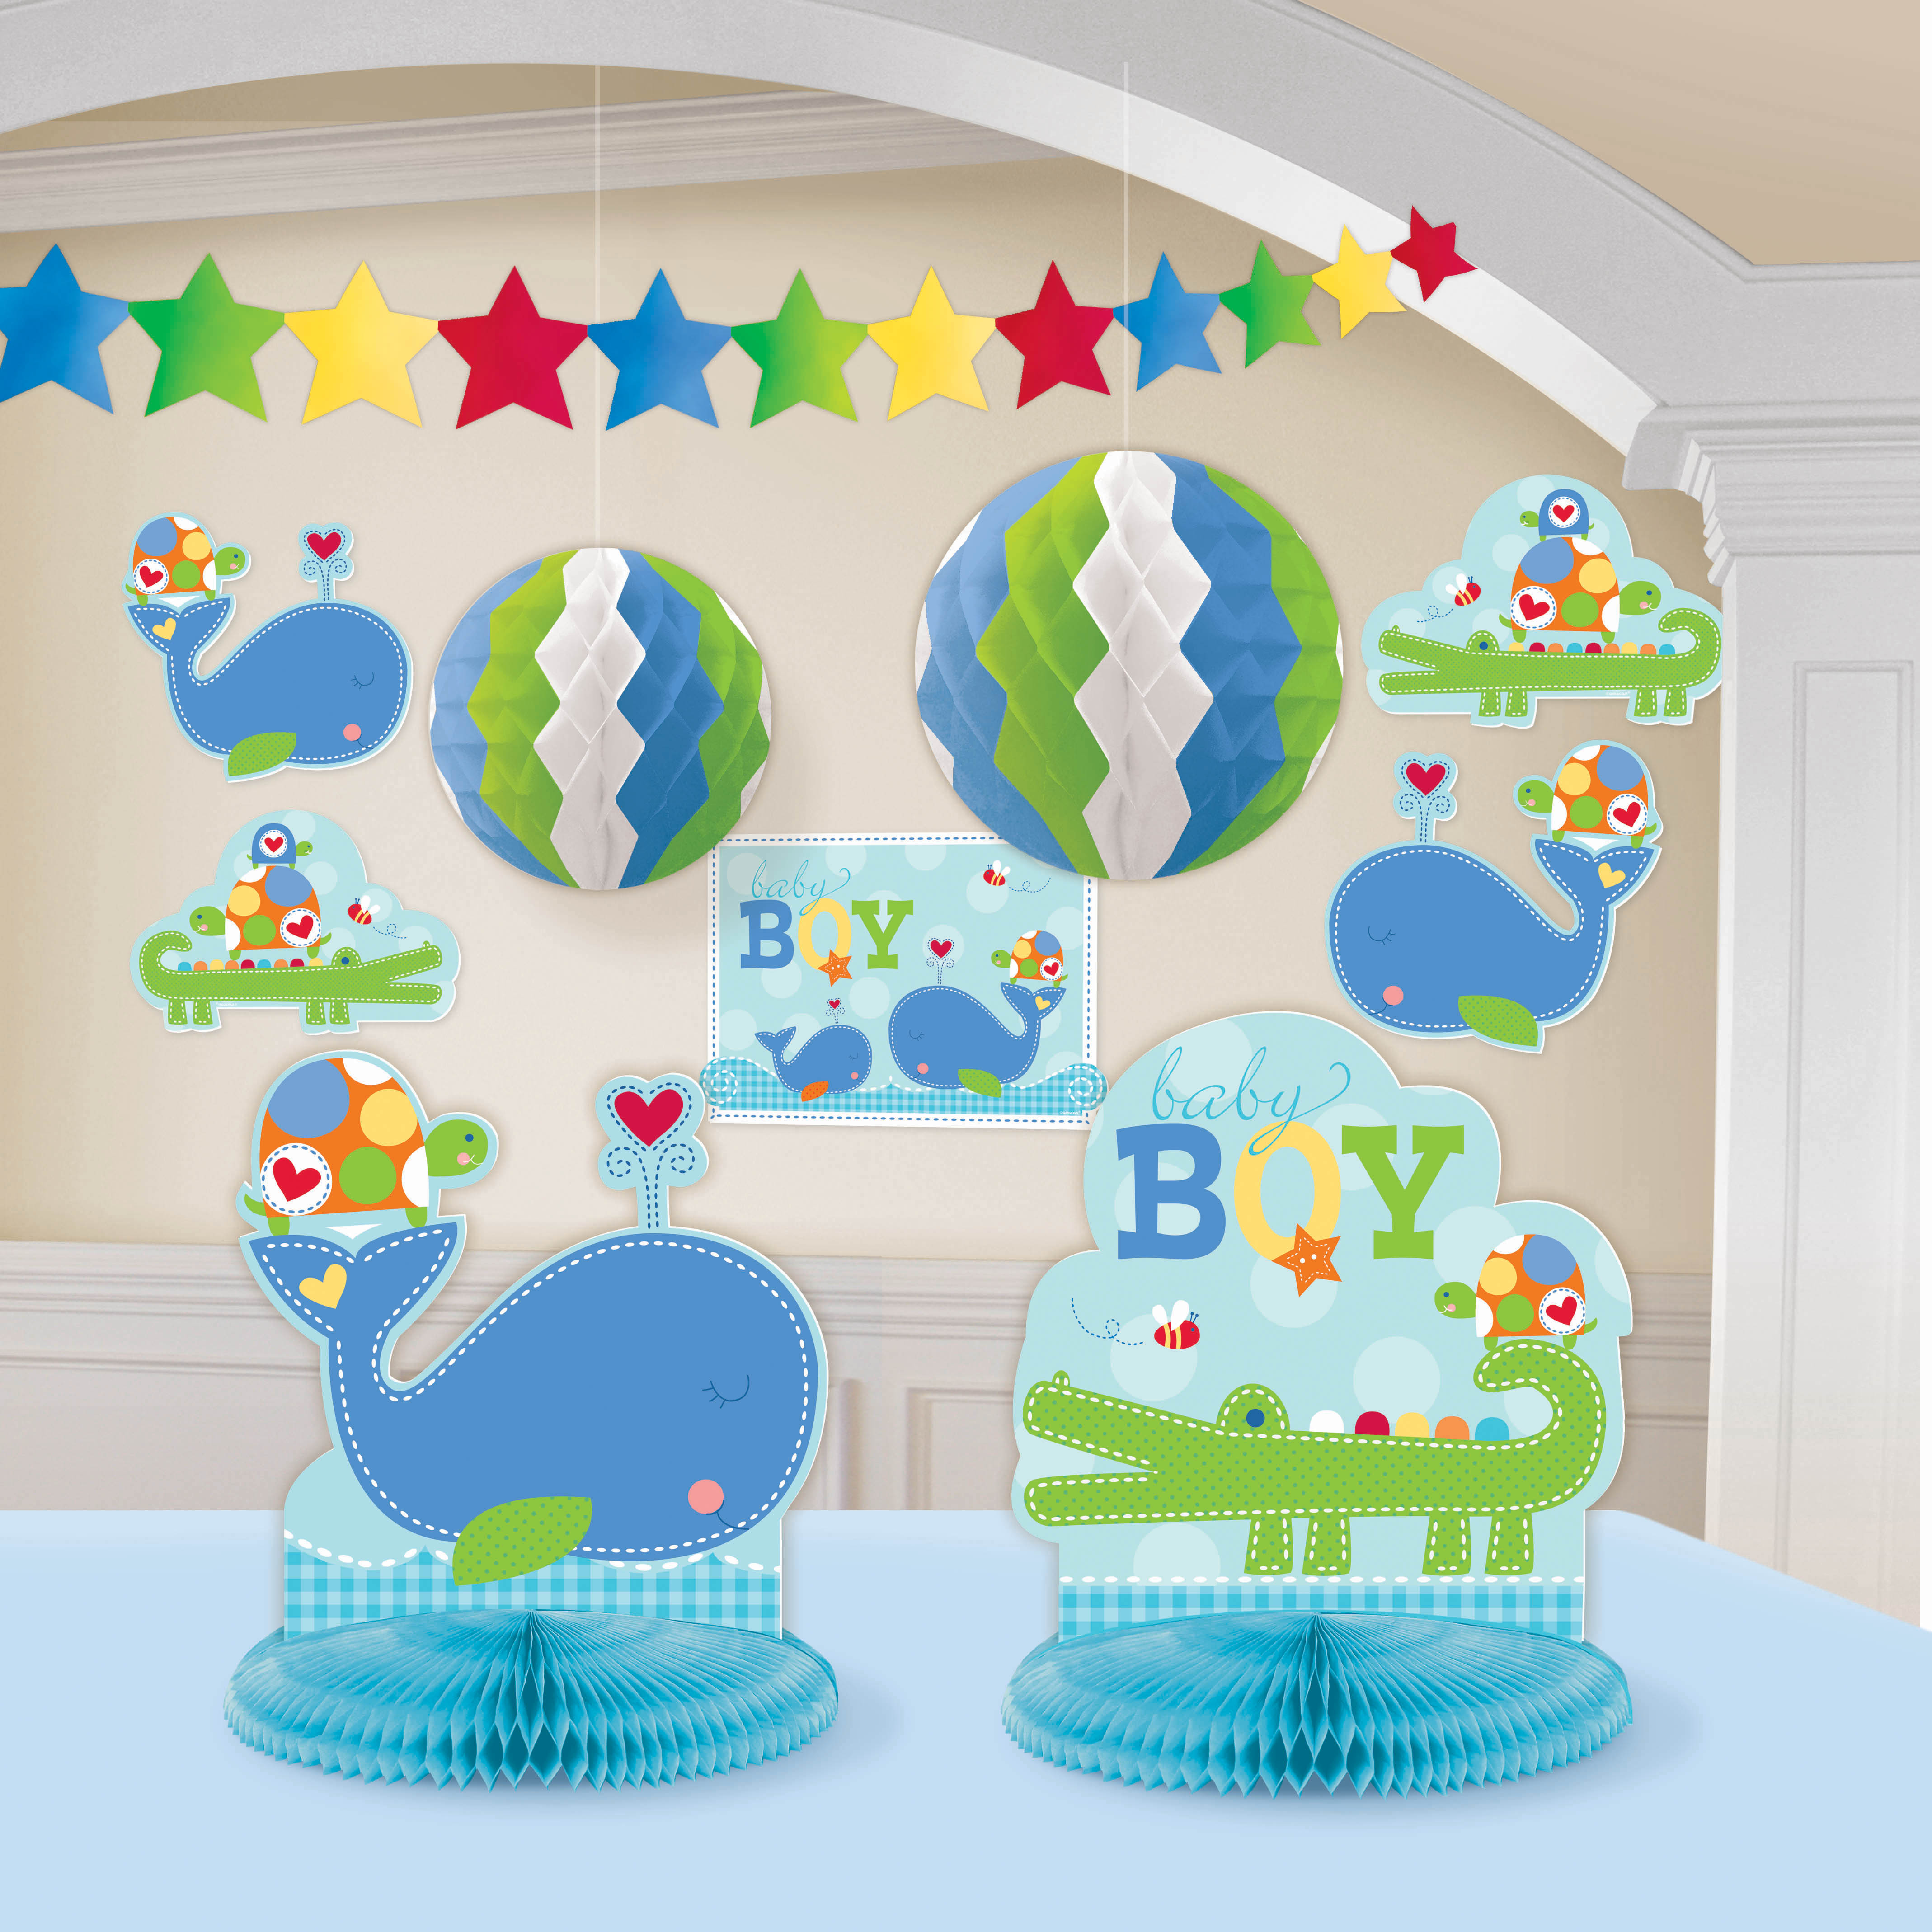 ahoy baby room decorating kit blue boy shower birthday